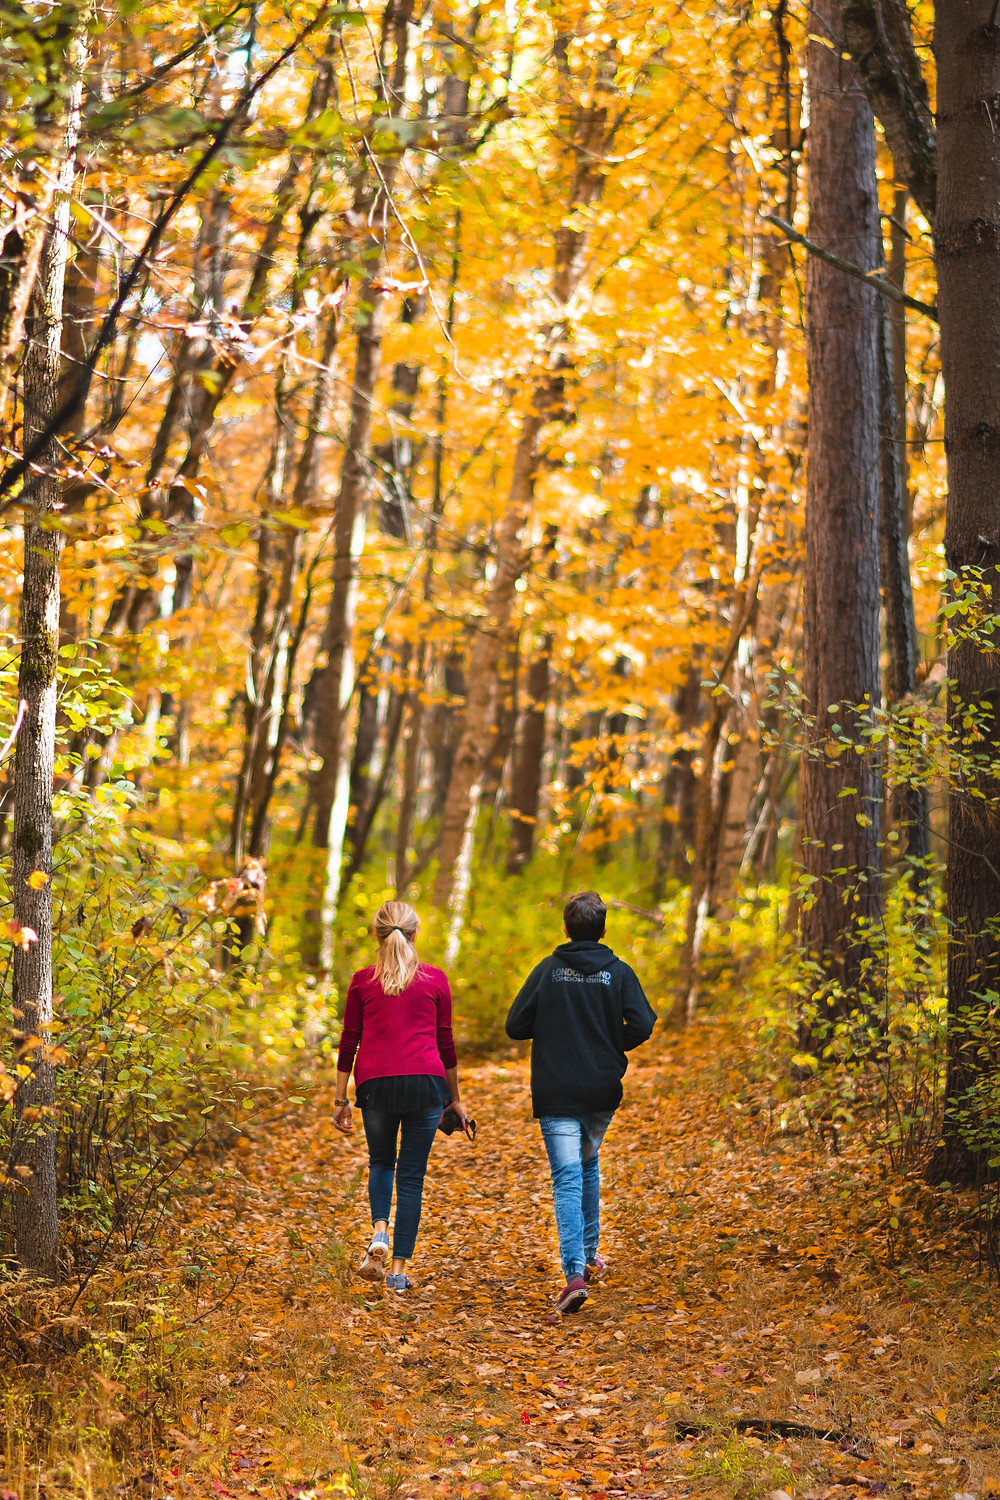 A new mom walking with a friend on a path in nature to help combat isolation in Denver CO. Our caring and compassionate therapists at Catalyss Counseling can help you feel less alone and more connected postpartum in Englewood CO 80209 and 80210